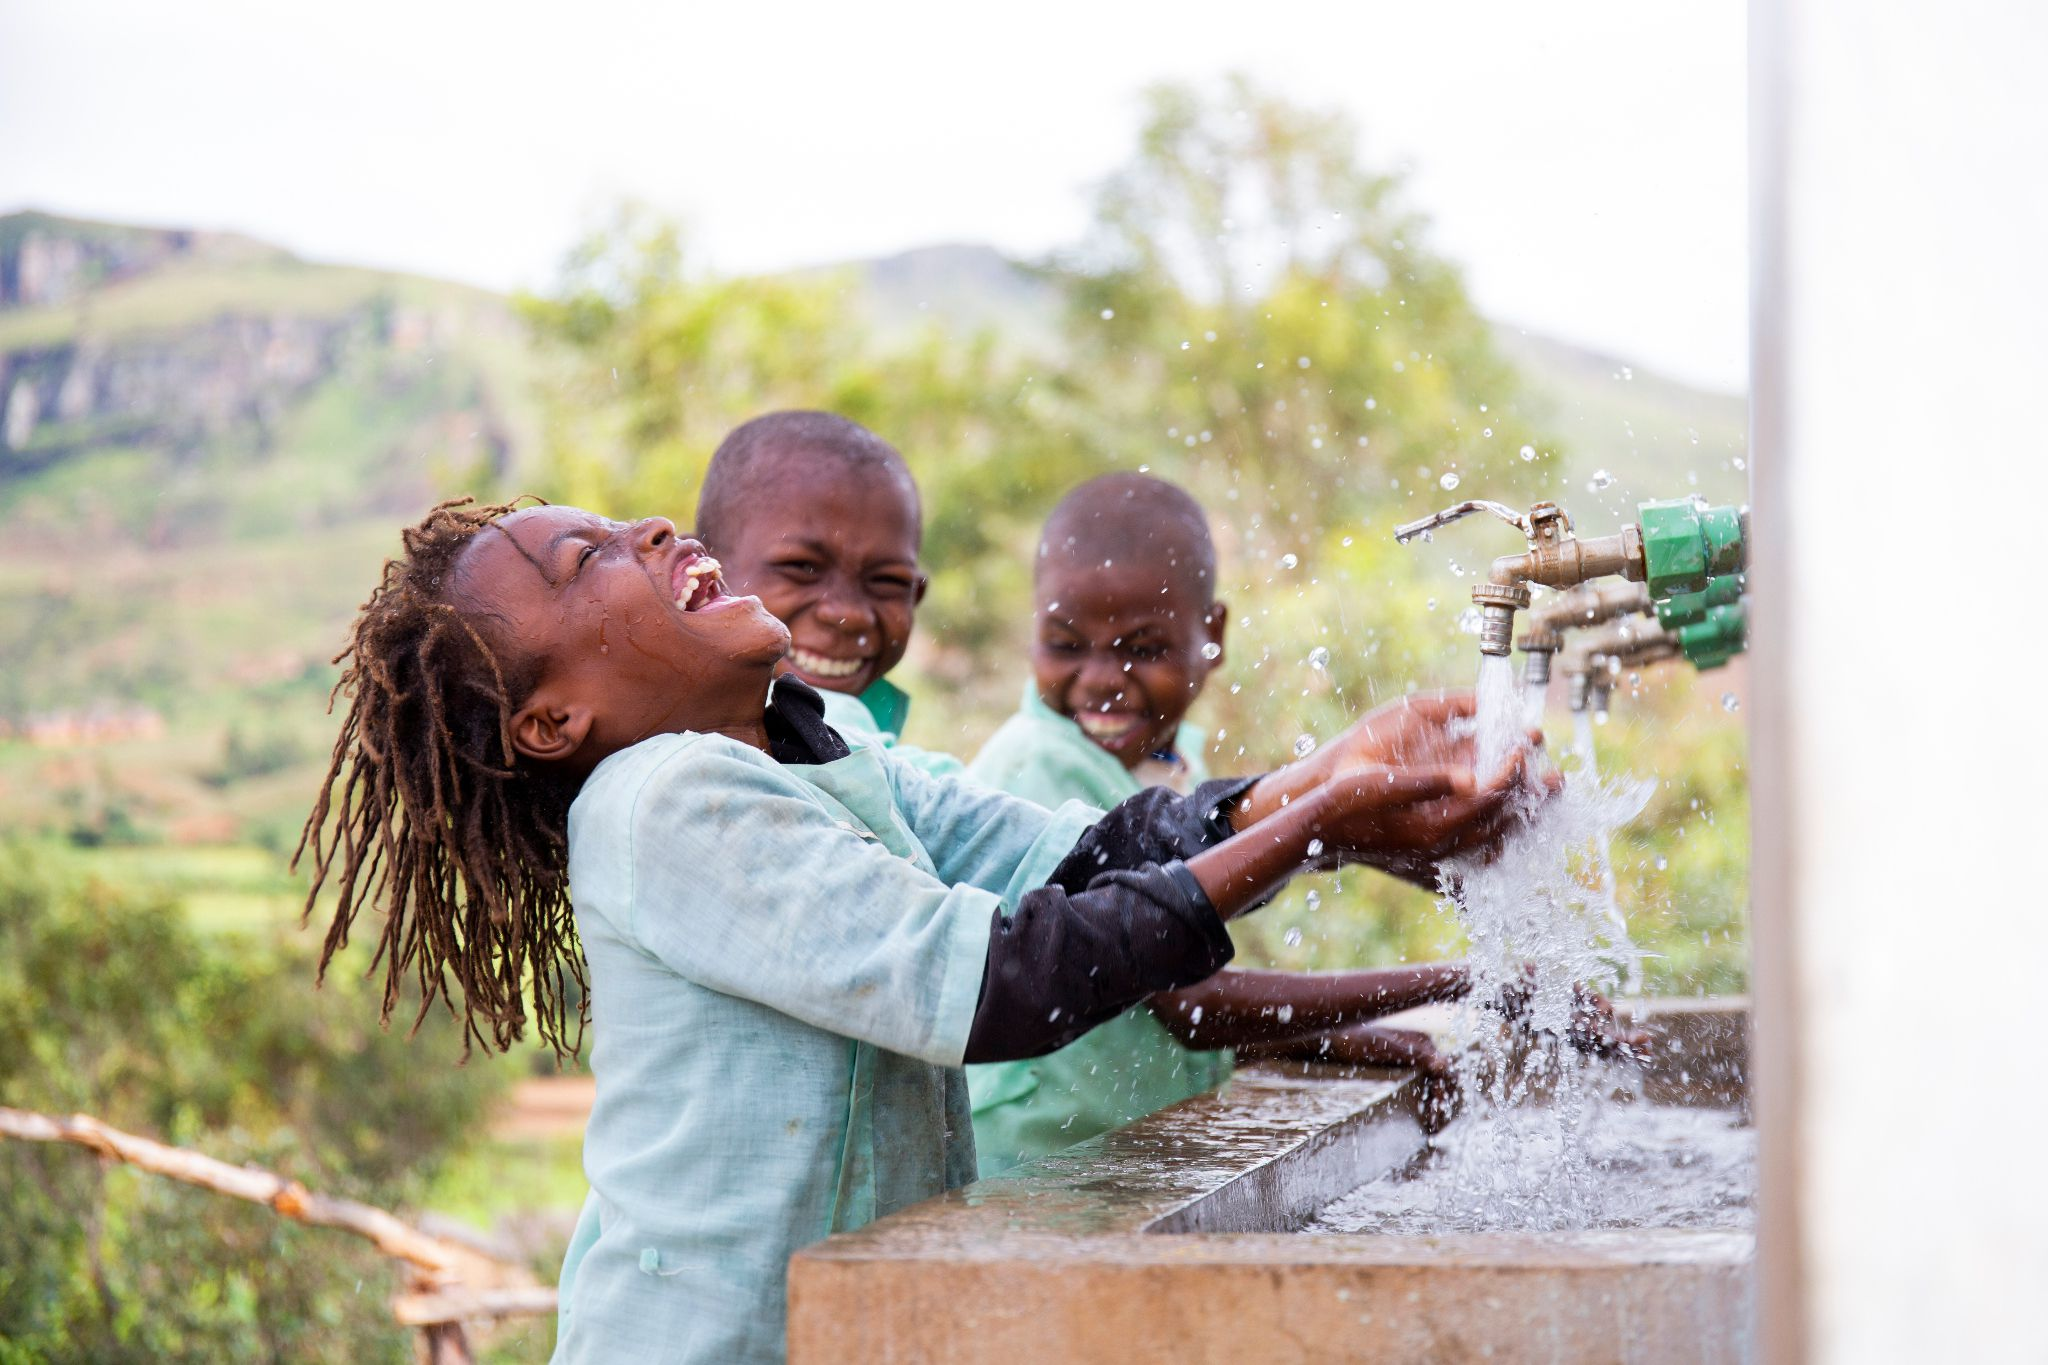 (/Ernest Randriarimalala | Photo courtesy of The Church of Jesus Christ of Latter-day Saints and WaterAid Toky, 7, and his friends wash their hands at the sanitation block in Madagascar. In 2020, Latter-day Saint Charities provided funding to help support 1.8 million refugees, internally displaced people and host community members in 39 countries with emergency water, shelter, water, sanitation and health support.